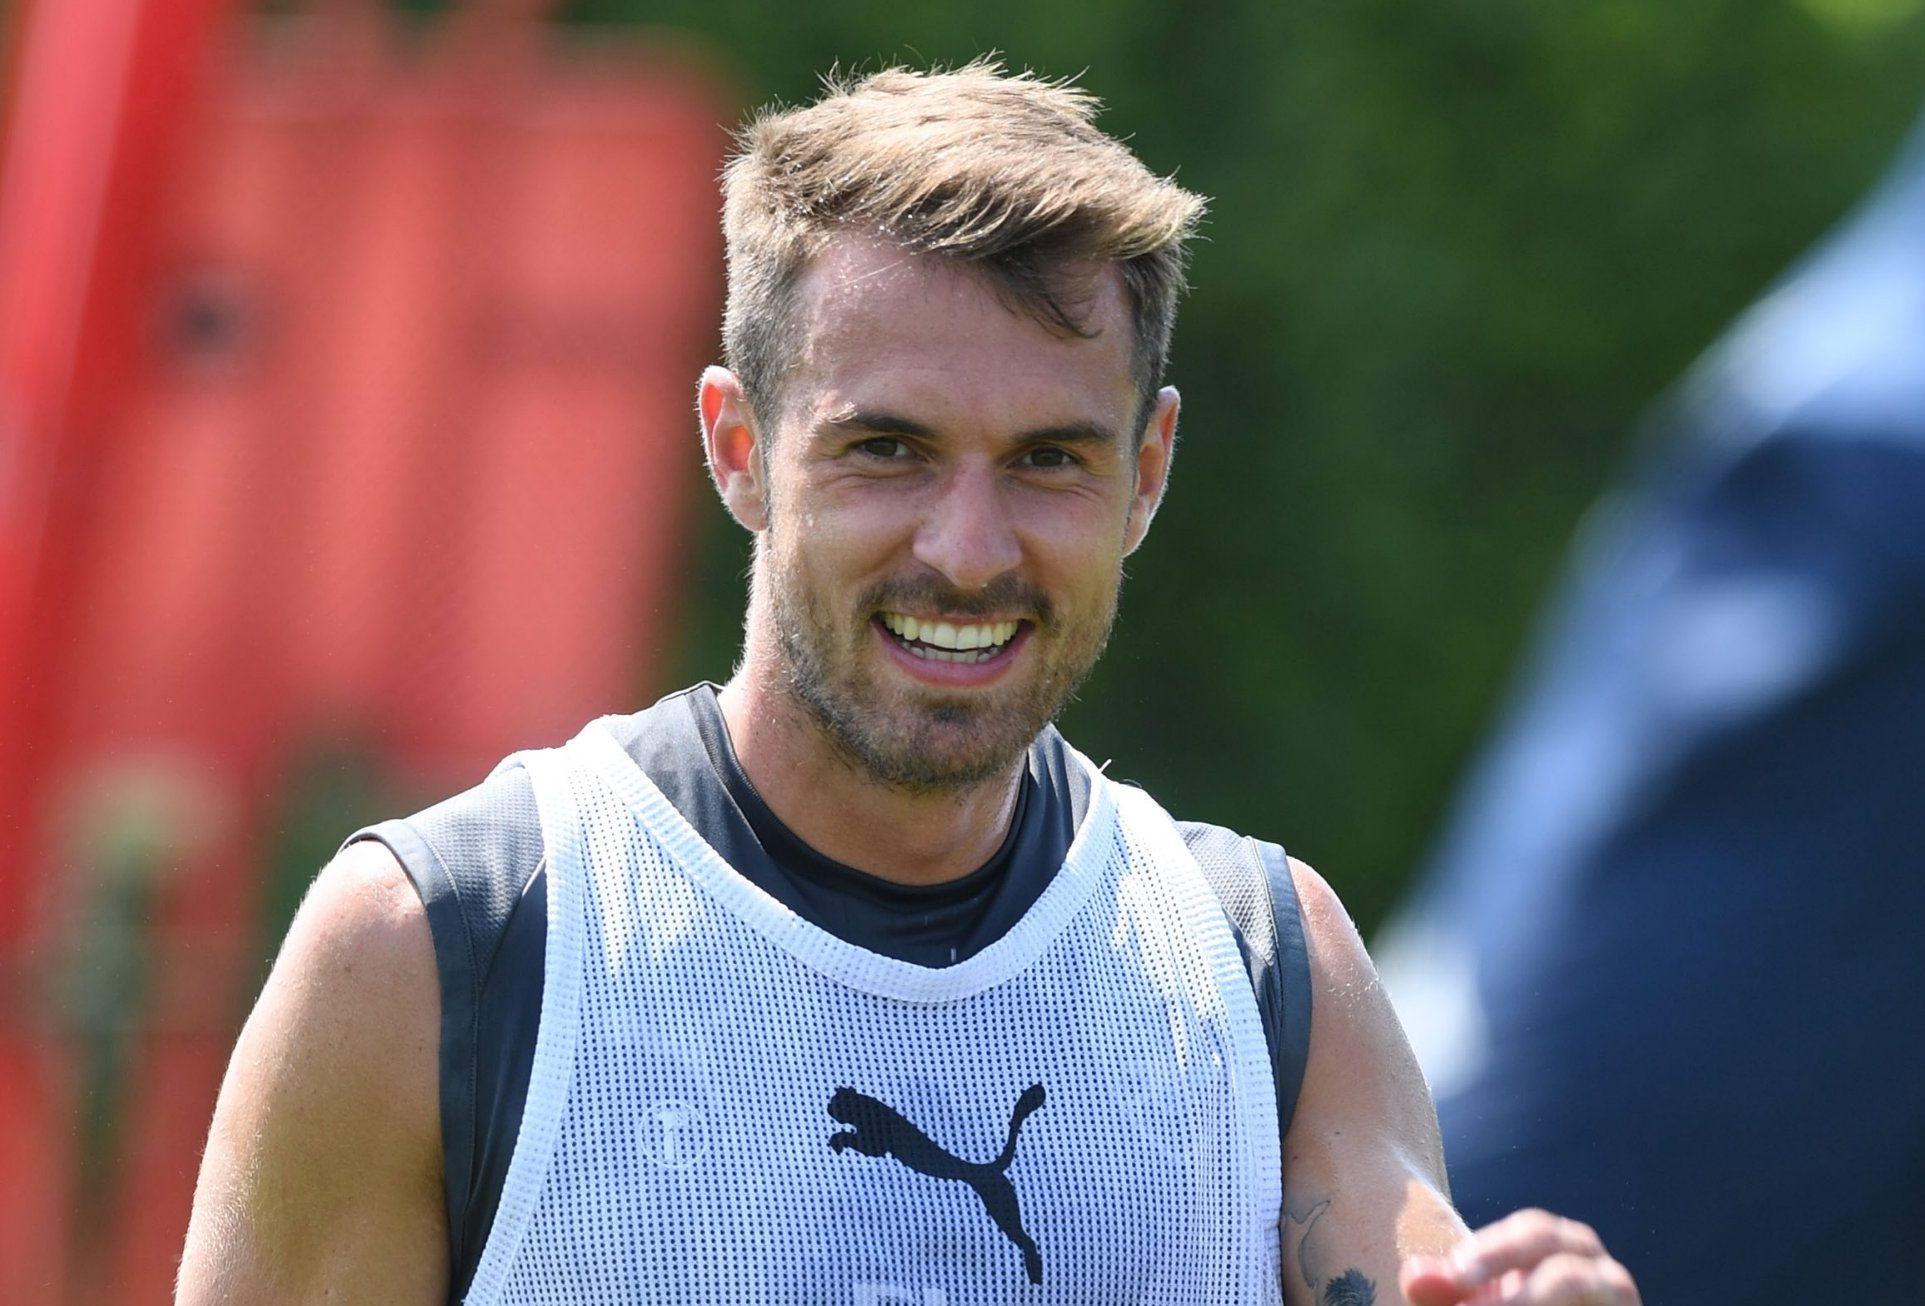 ST ALBANS, ENGLAND - JULY 06: Aaron Ramsey of Arsenal during a training session at London Colney on July 6, 2018 in St Albans, England. (Photo by Stuart MacFarlane/Arsenal FC via Getty Images)